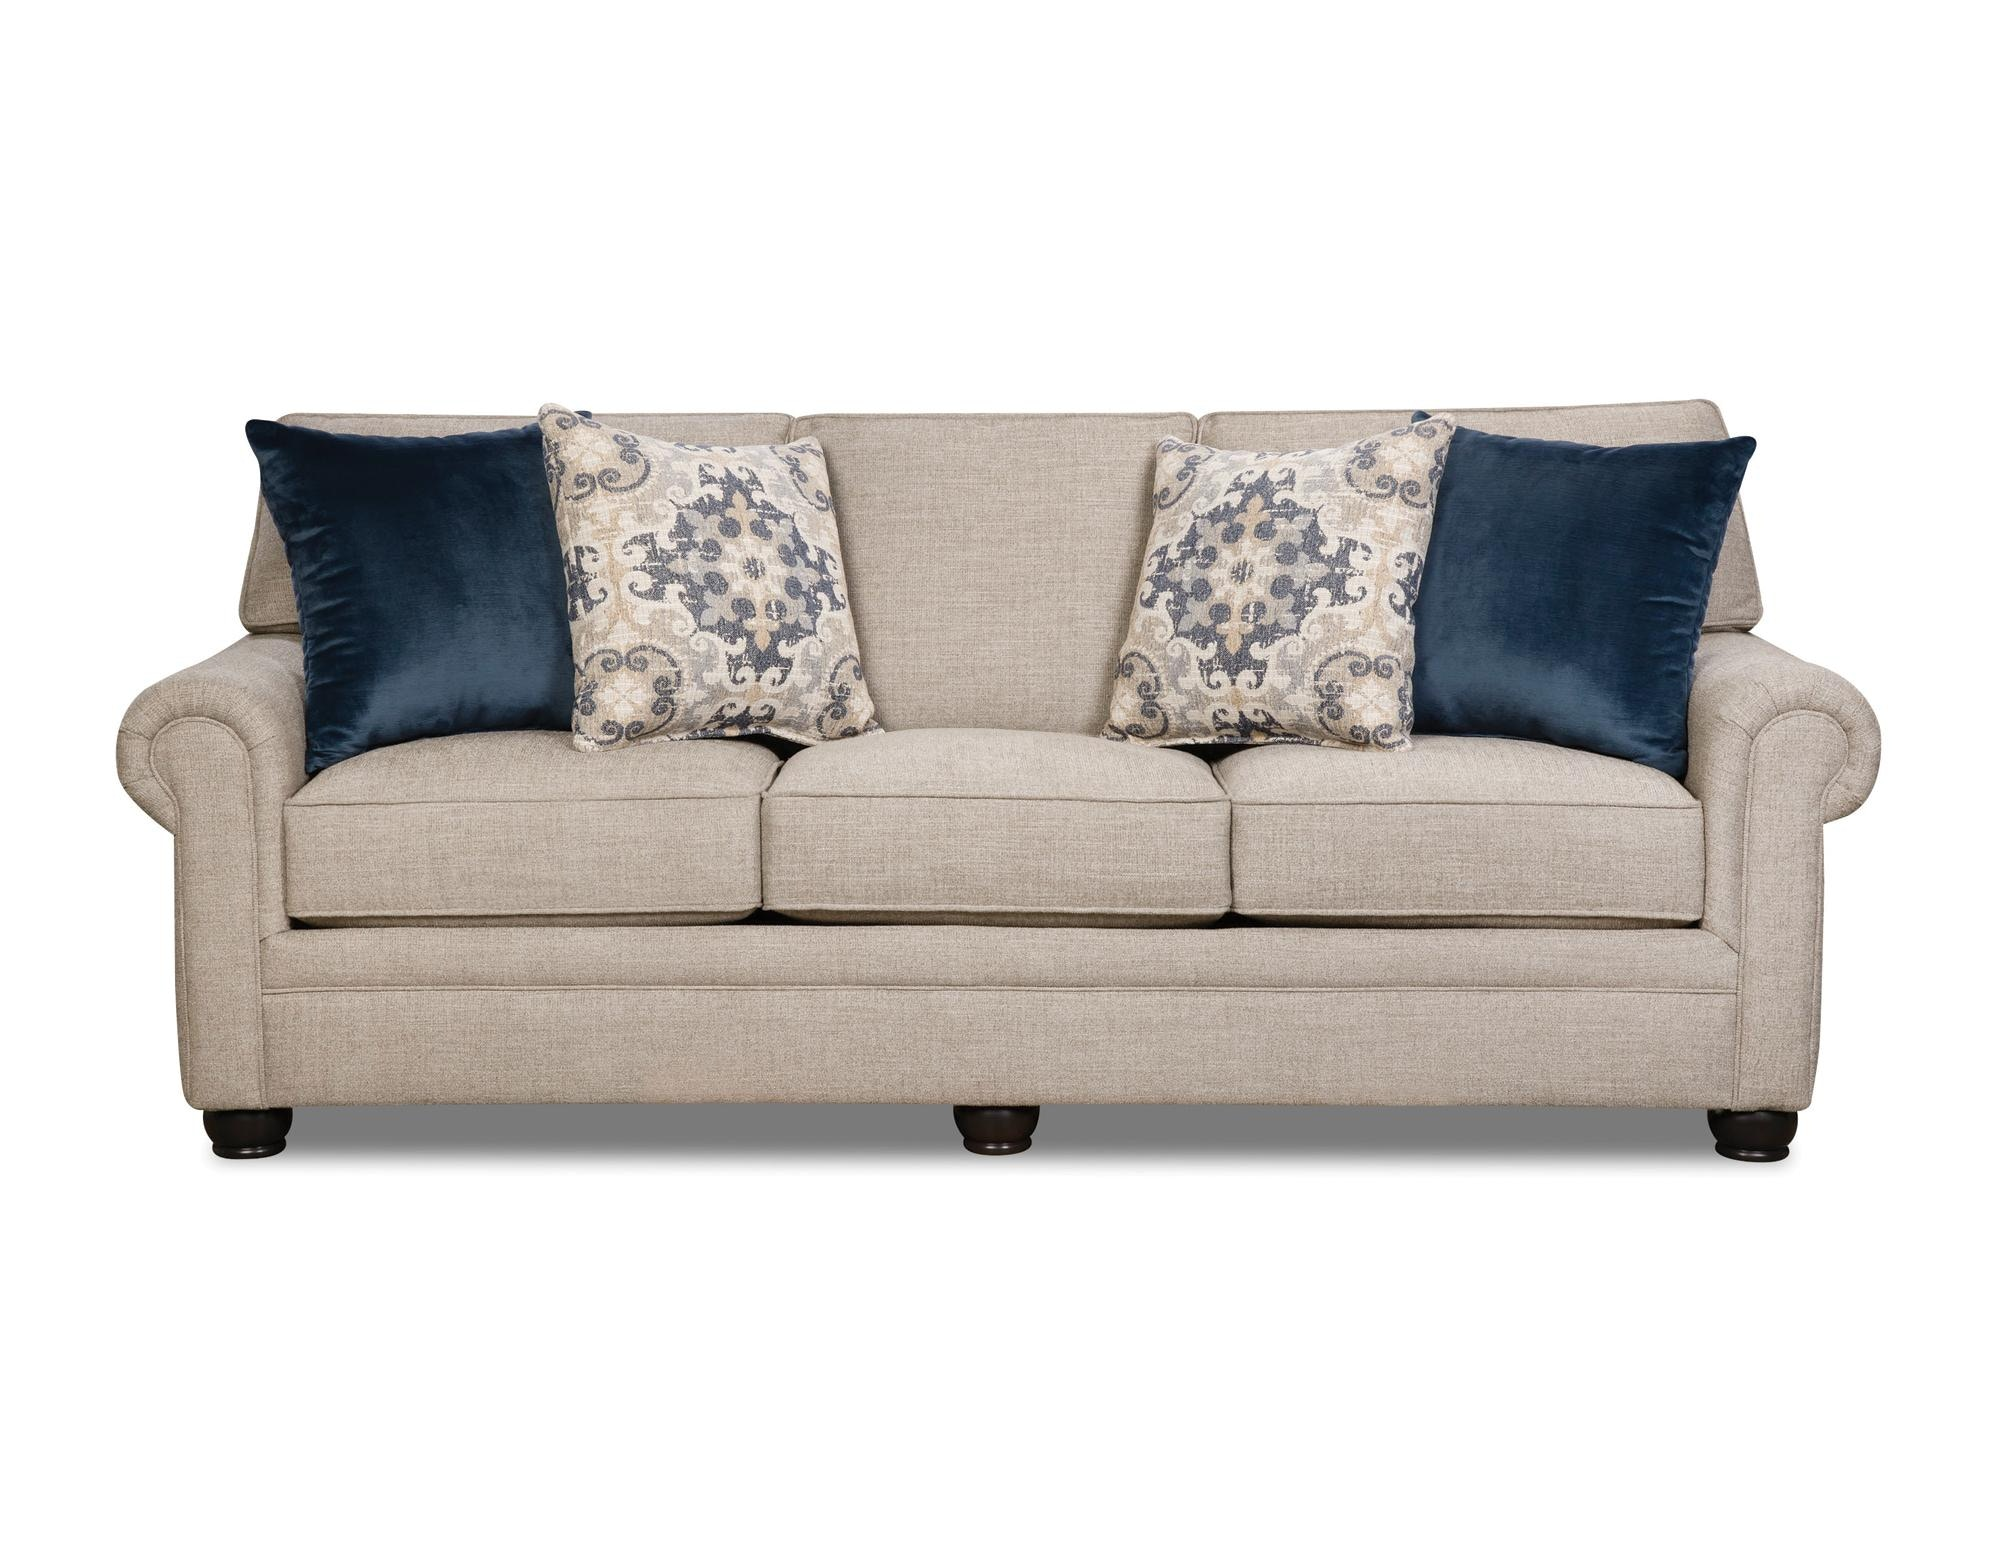 Corinthian Living Room Lilou Sleeper Sofa 056627 Furniture Fair